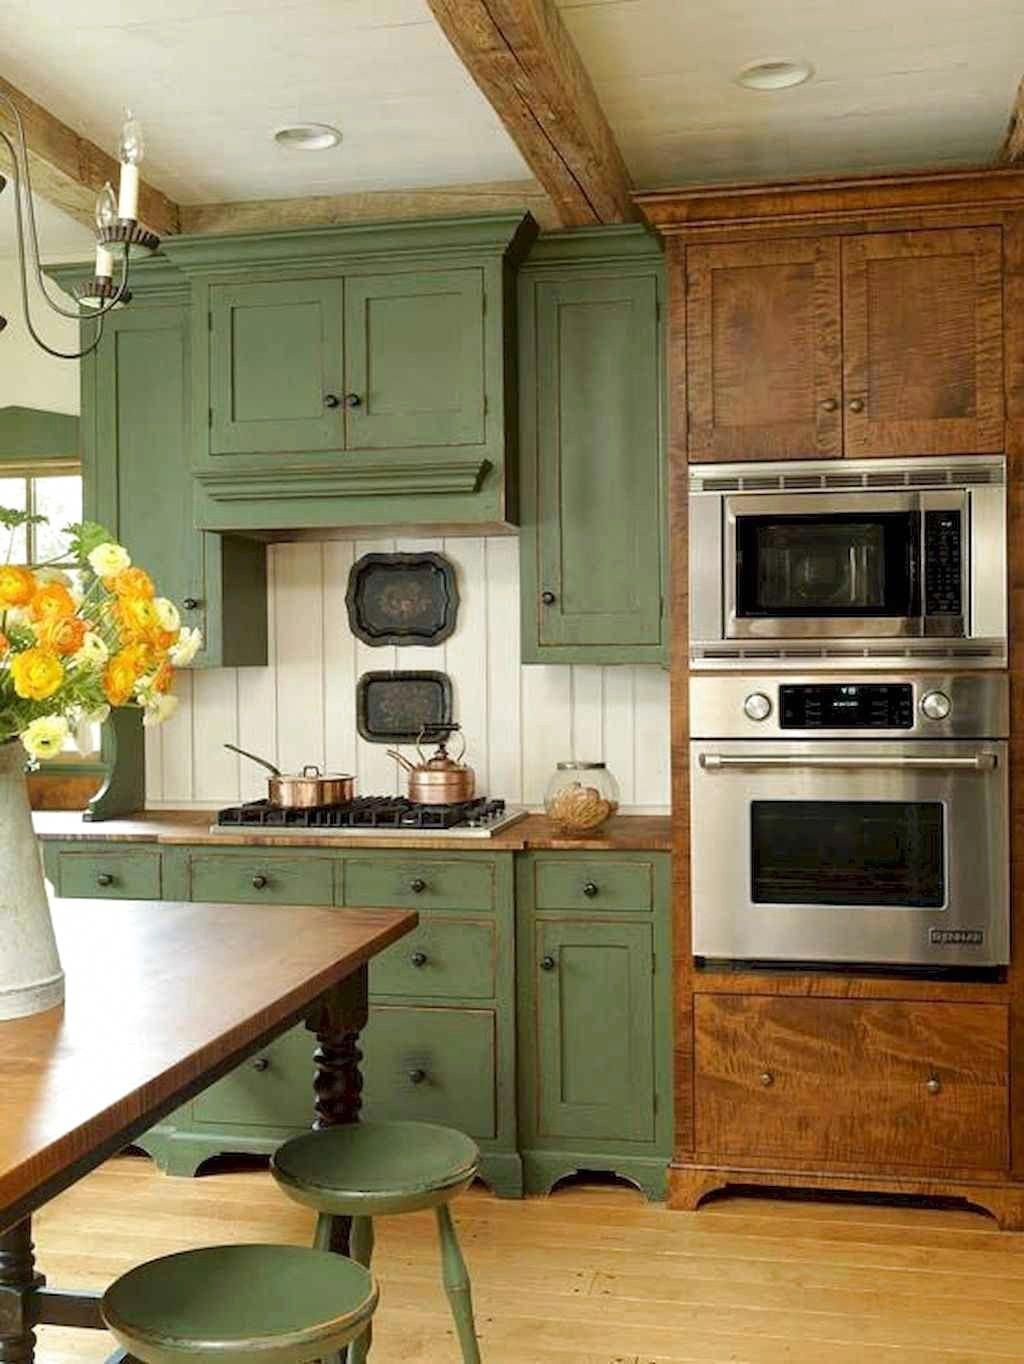 i ll try this out when i am able to kitchen counters ideas in 2020 farmhouse kitchen cabinets on farmhouse kitchen cabinets id=47285